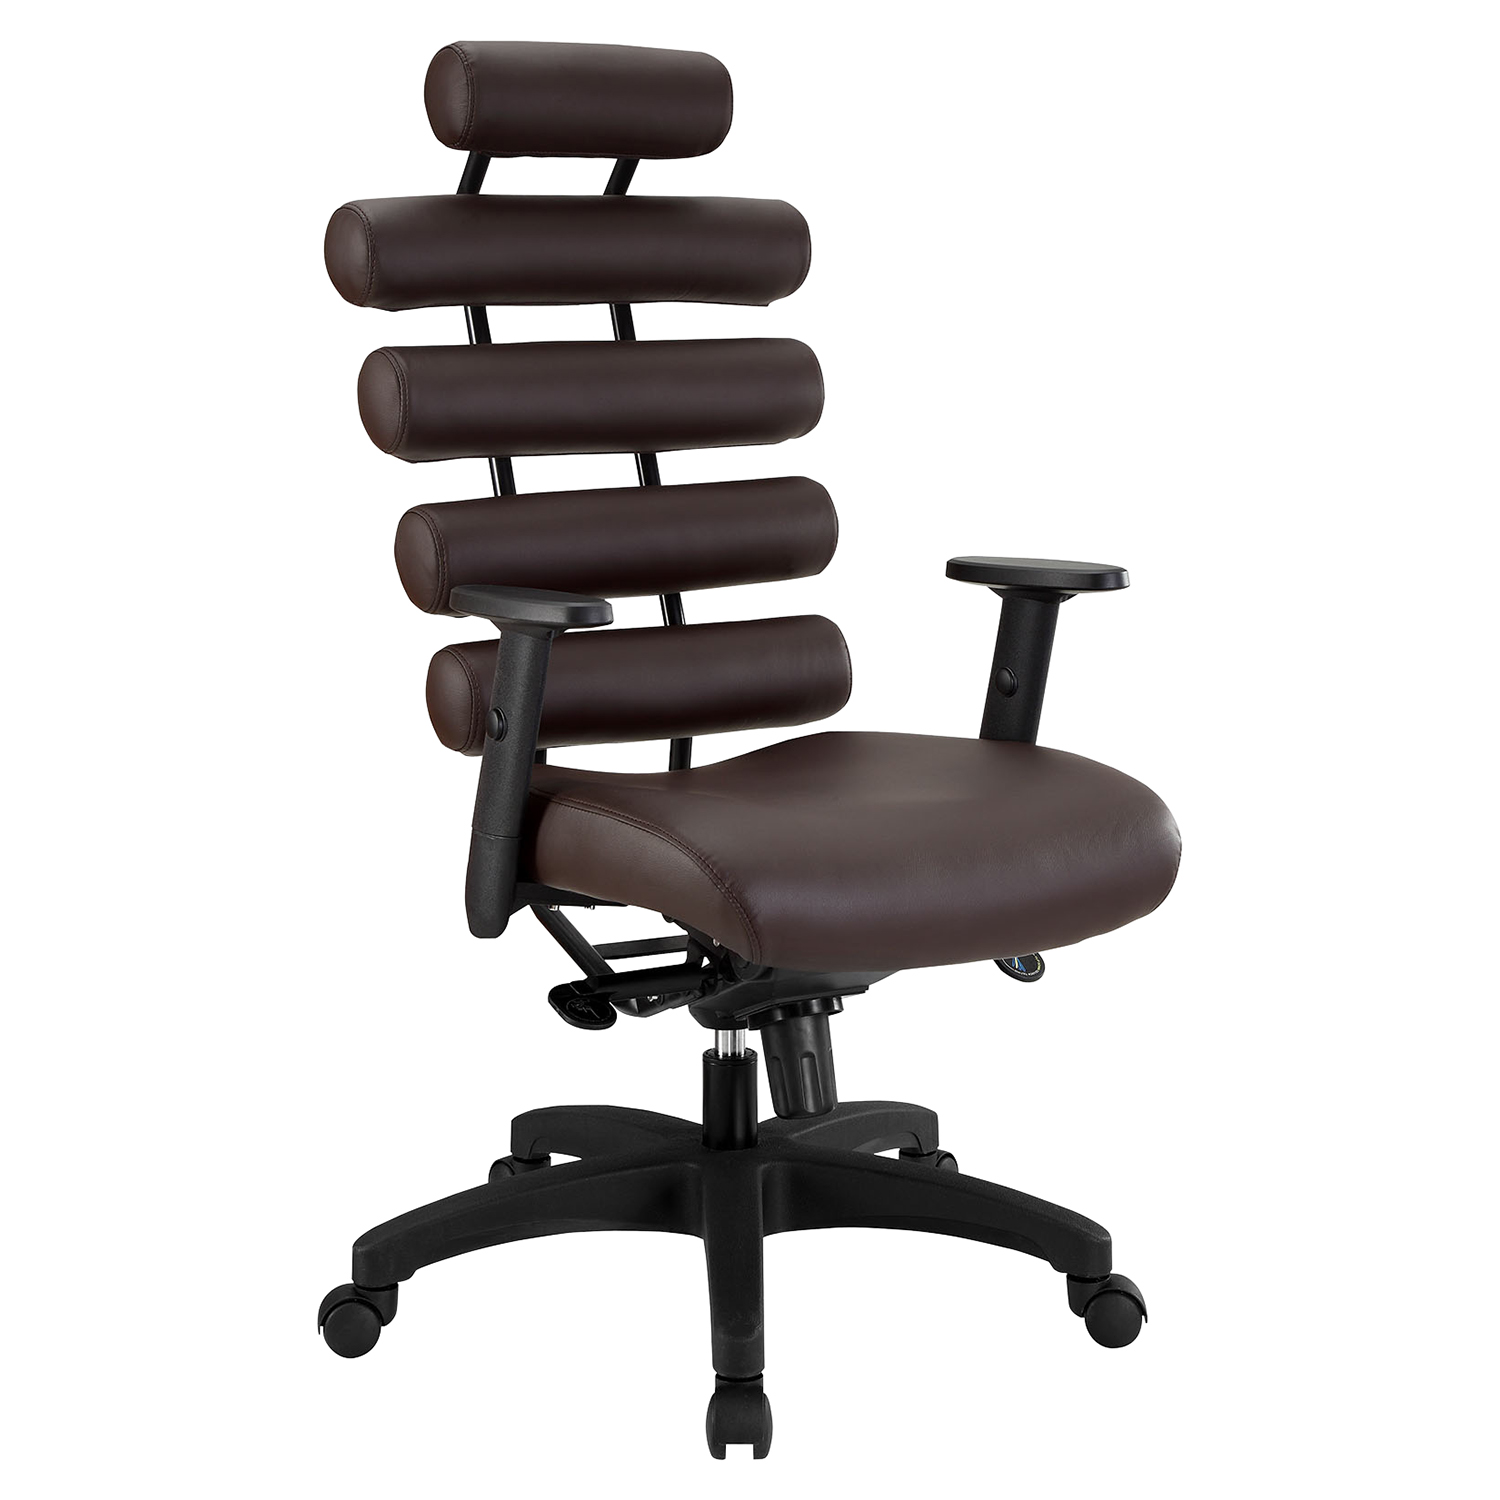 Pillow Faux Leather Office Chair - Height Adjustable, Dark Brown